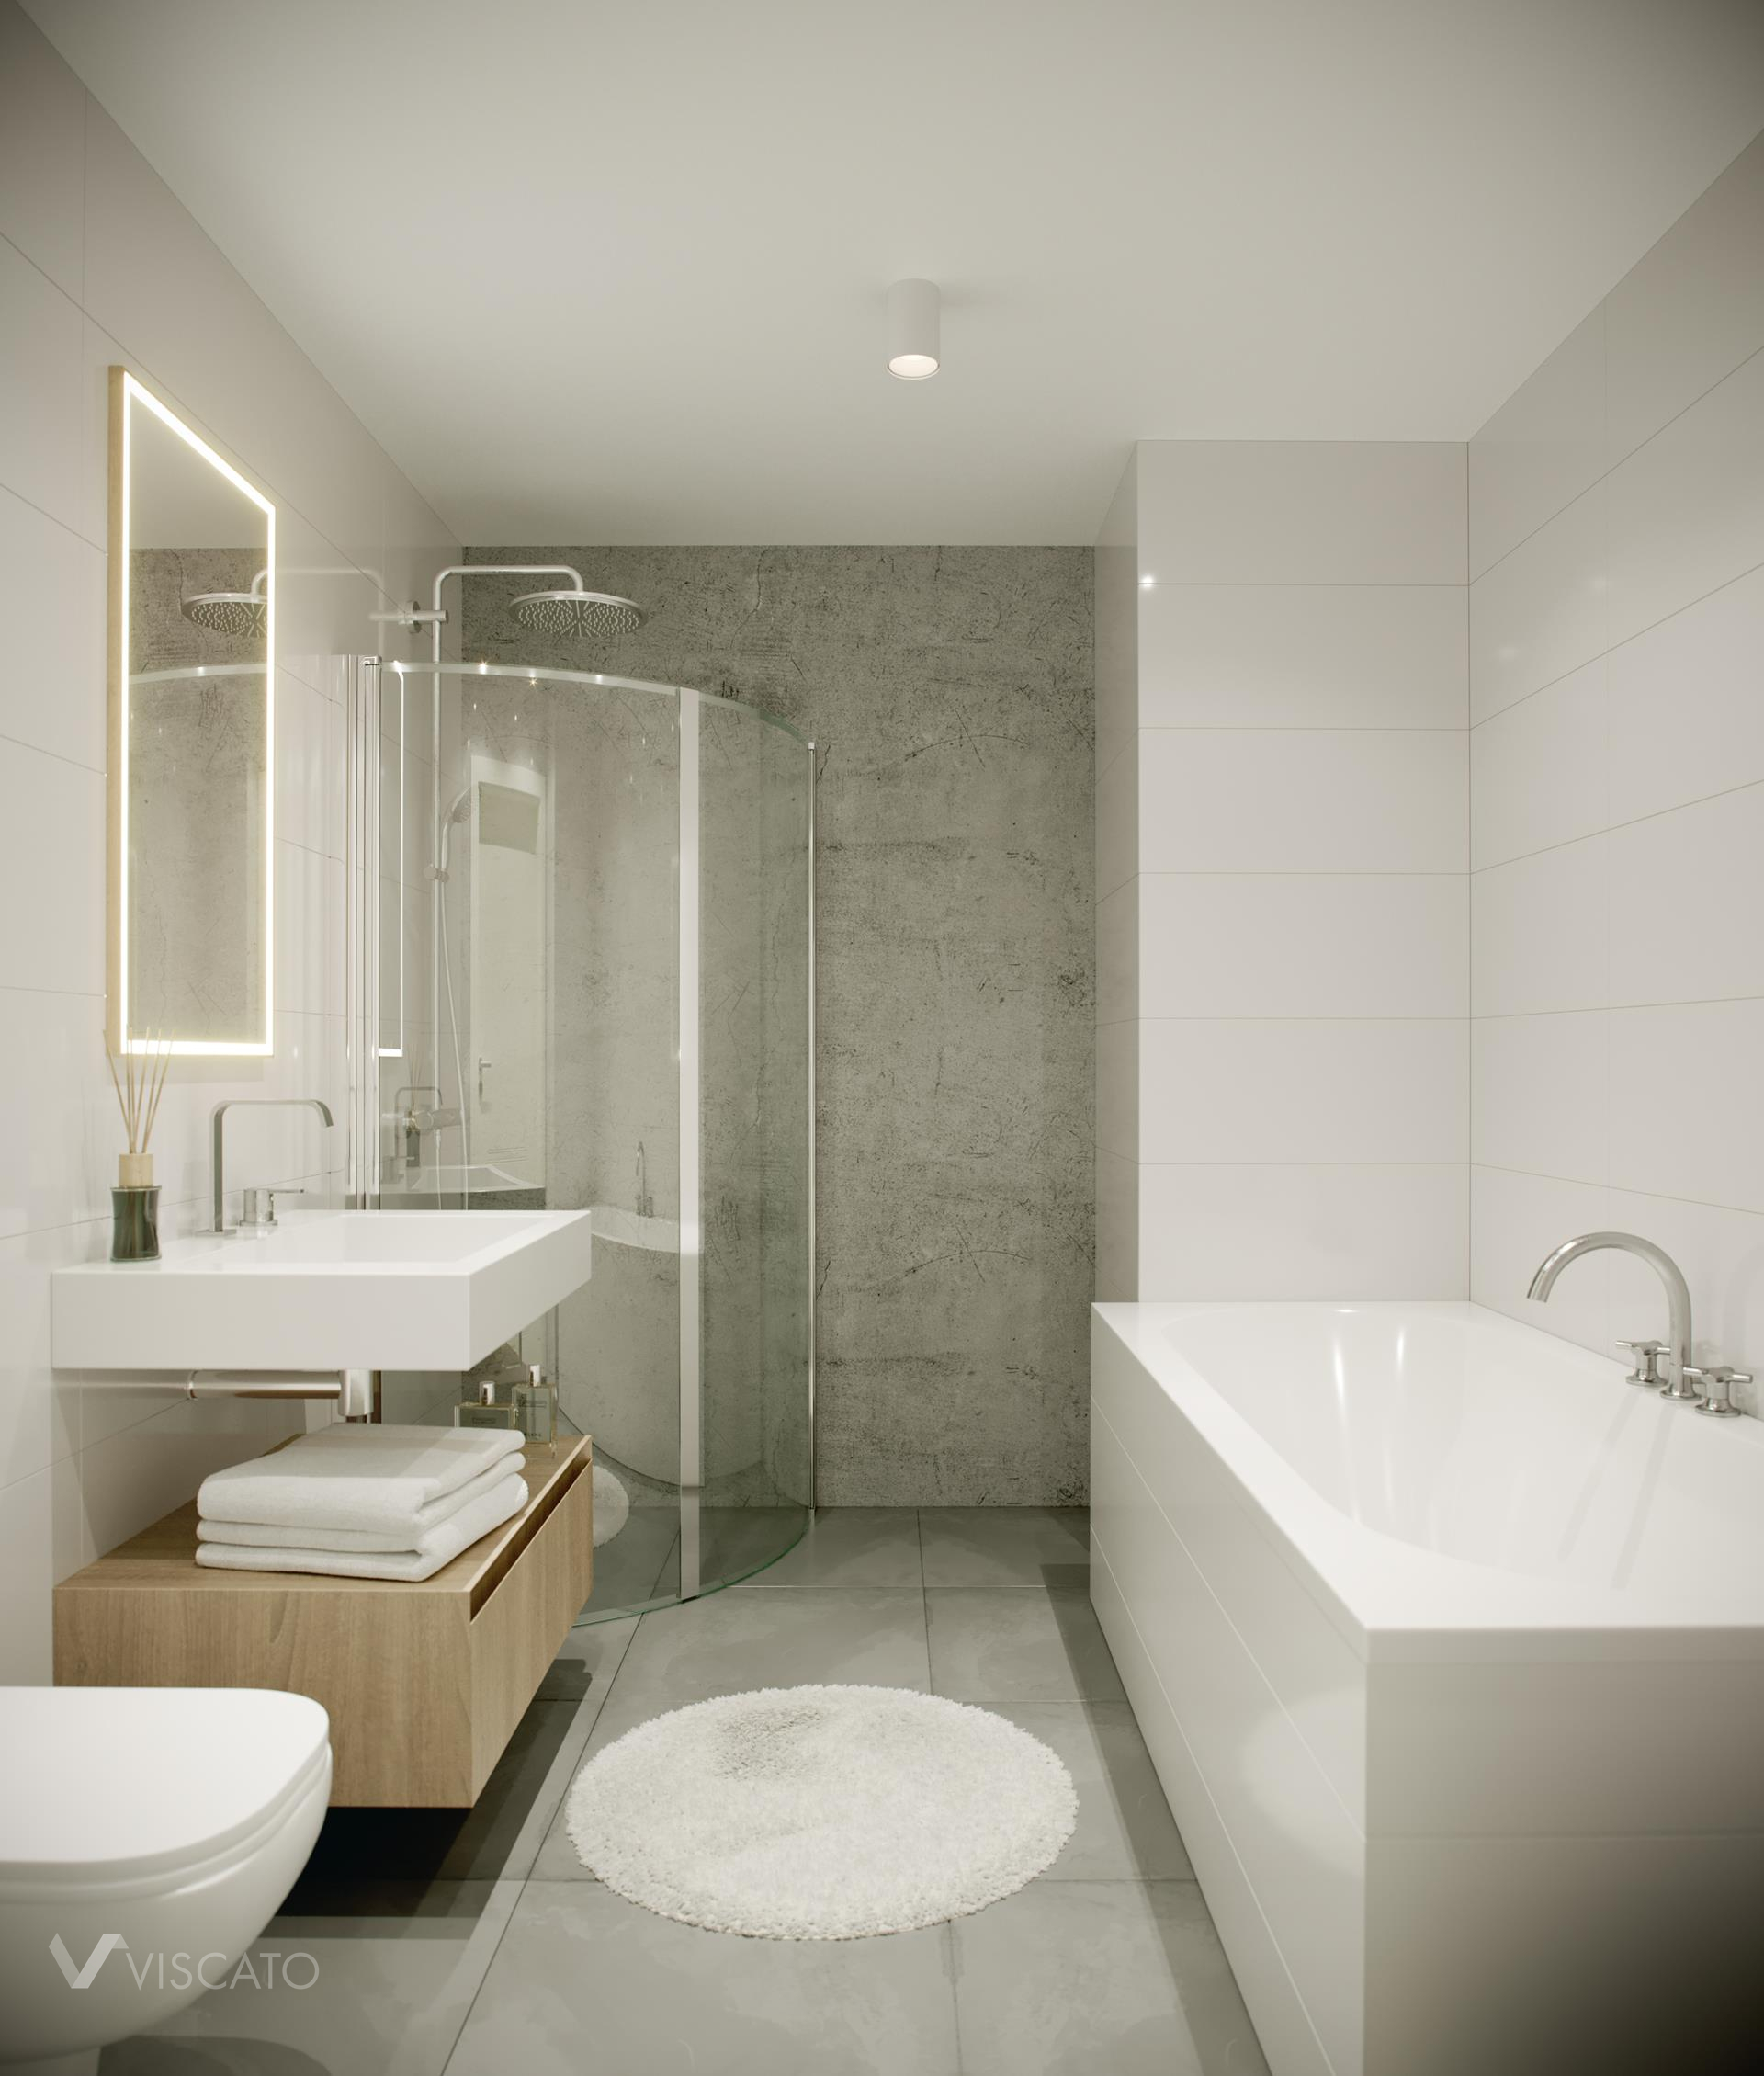 Shower cabin, 3ds Max